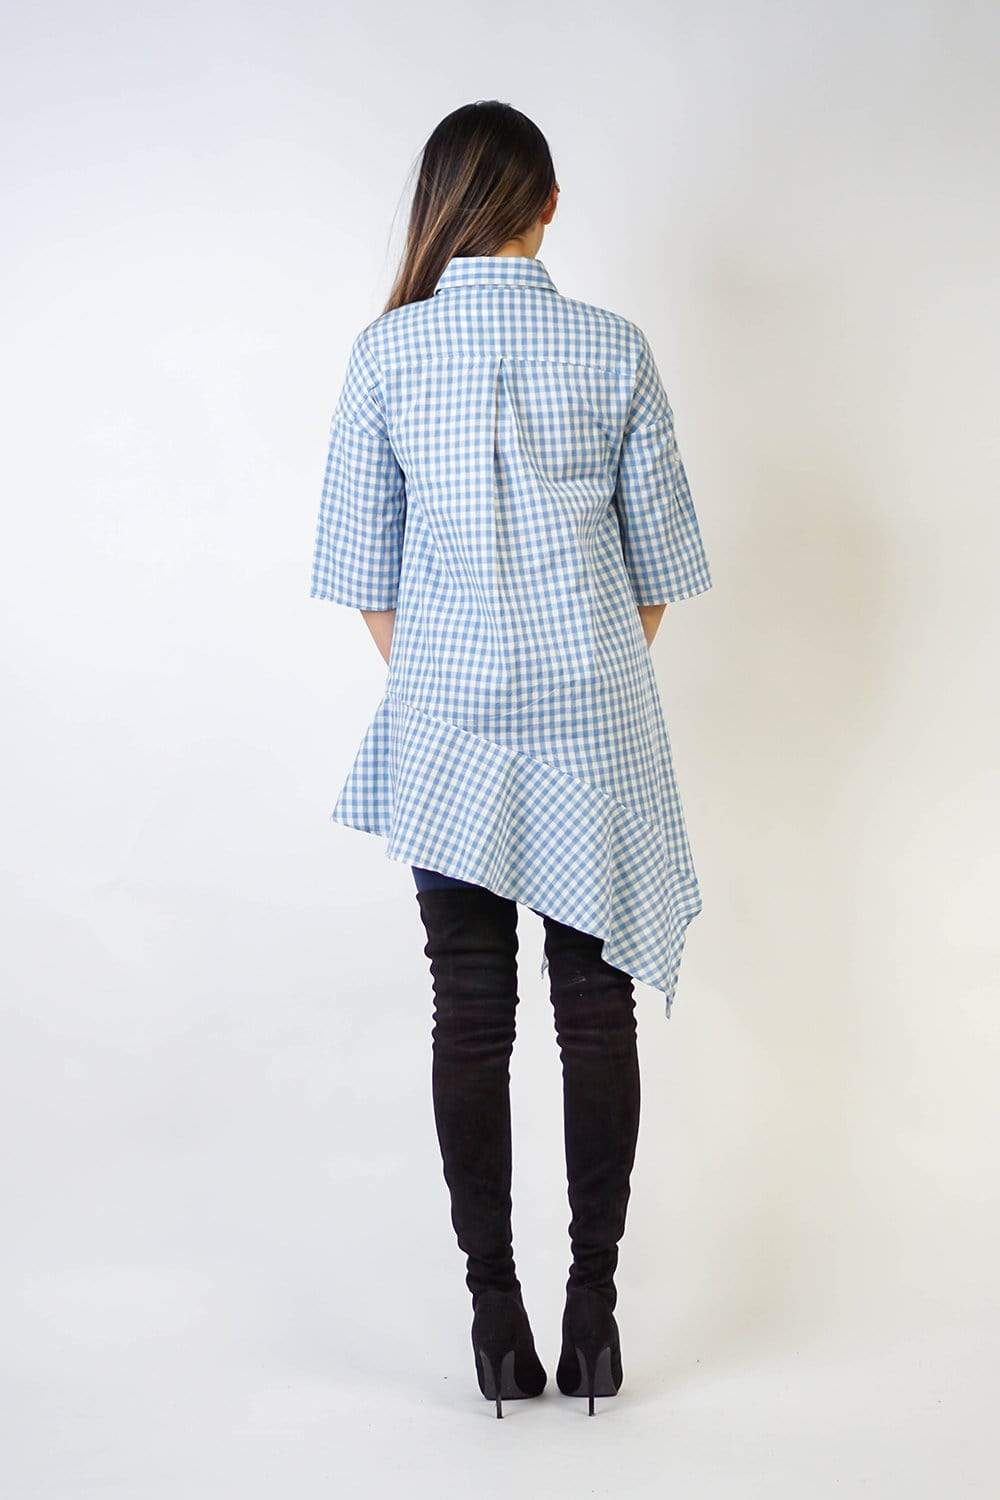 DRESS Light Blue Gingham Asymmetric Ruffle Shirt Dress - Chloe Dao